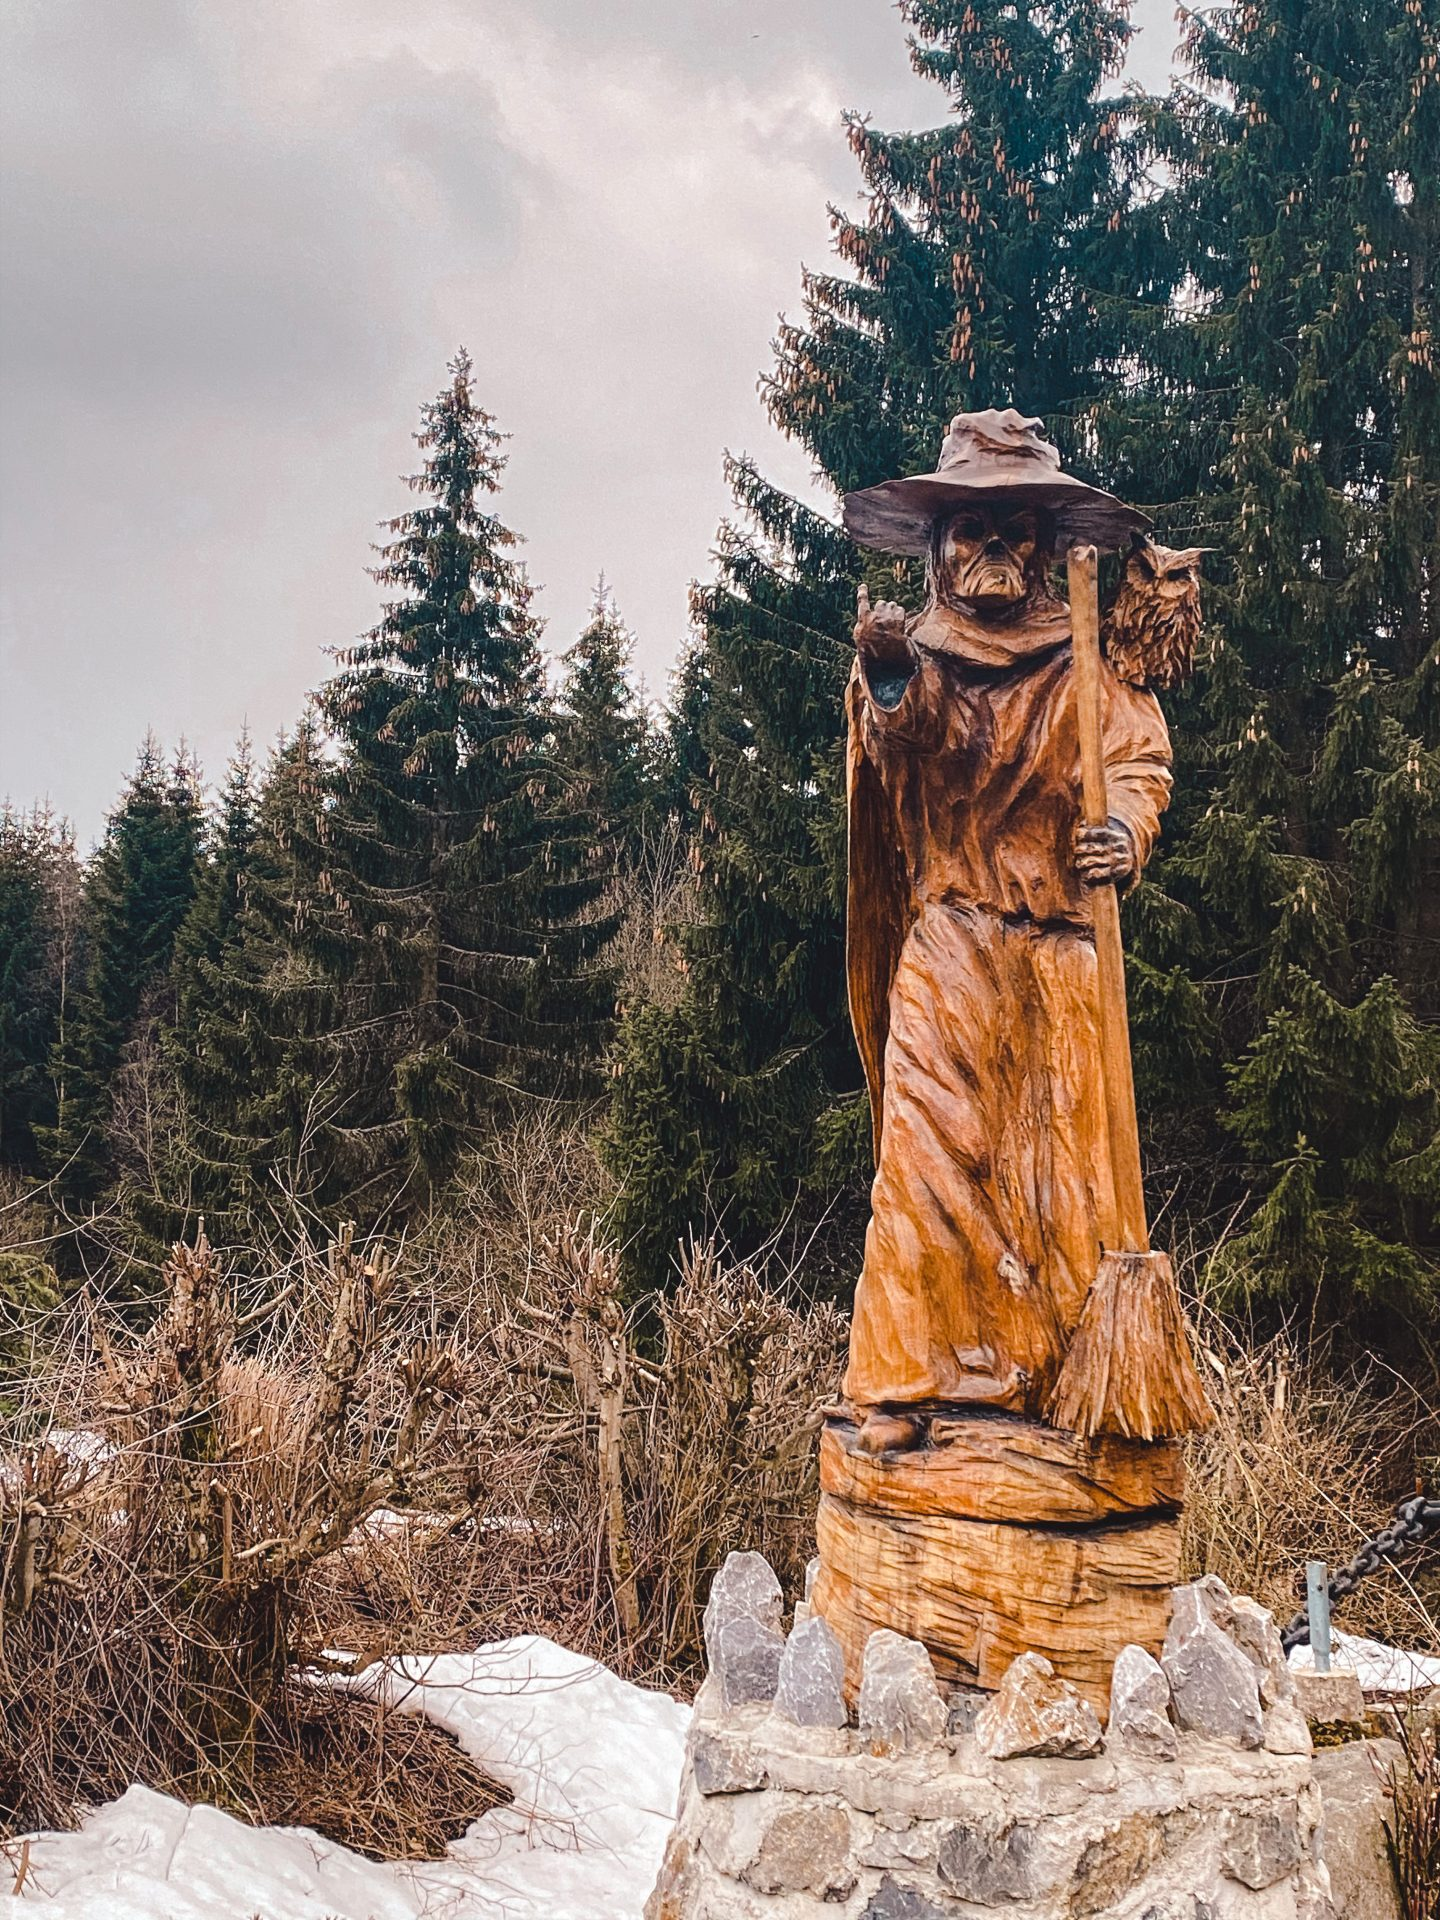 Witch as common in the Harz Mountains